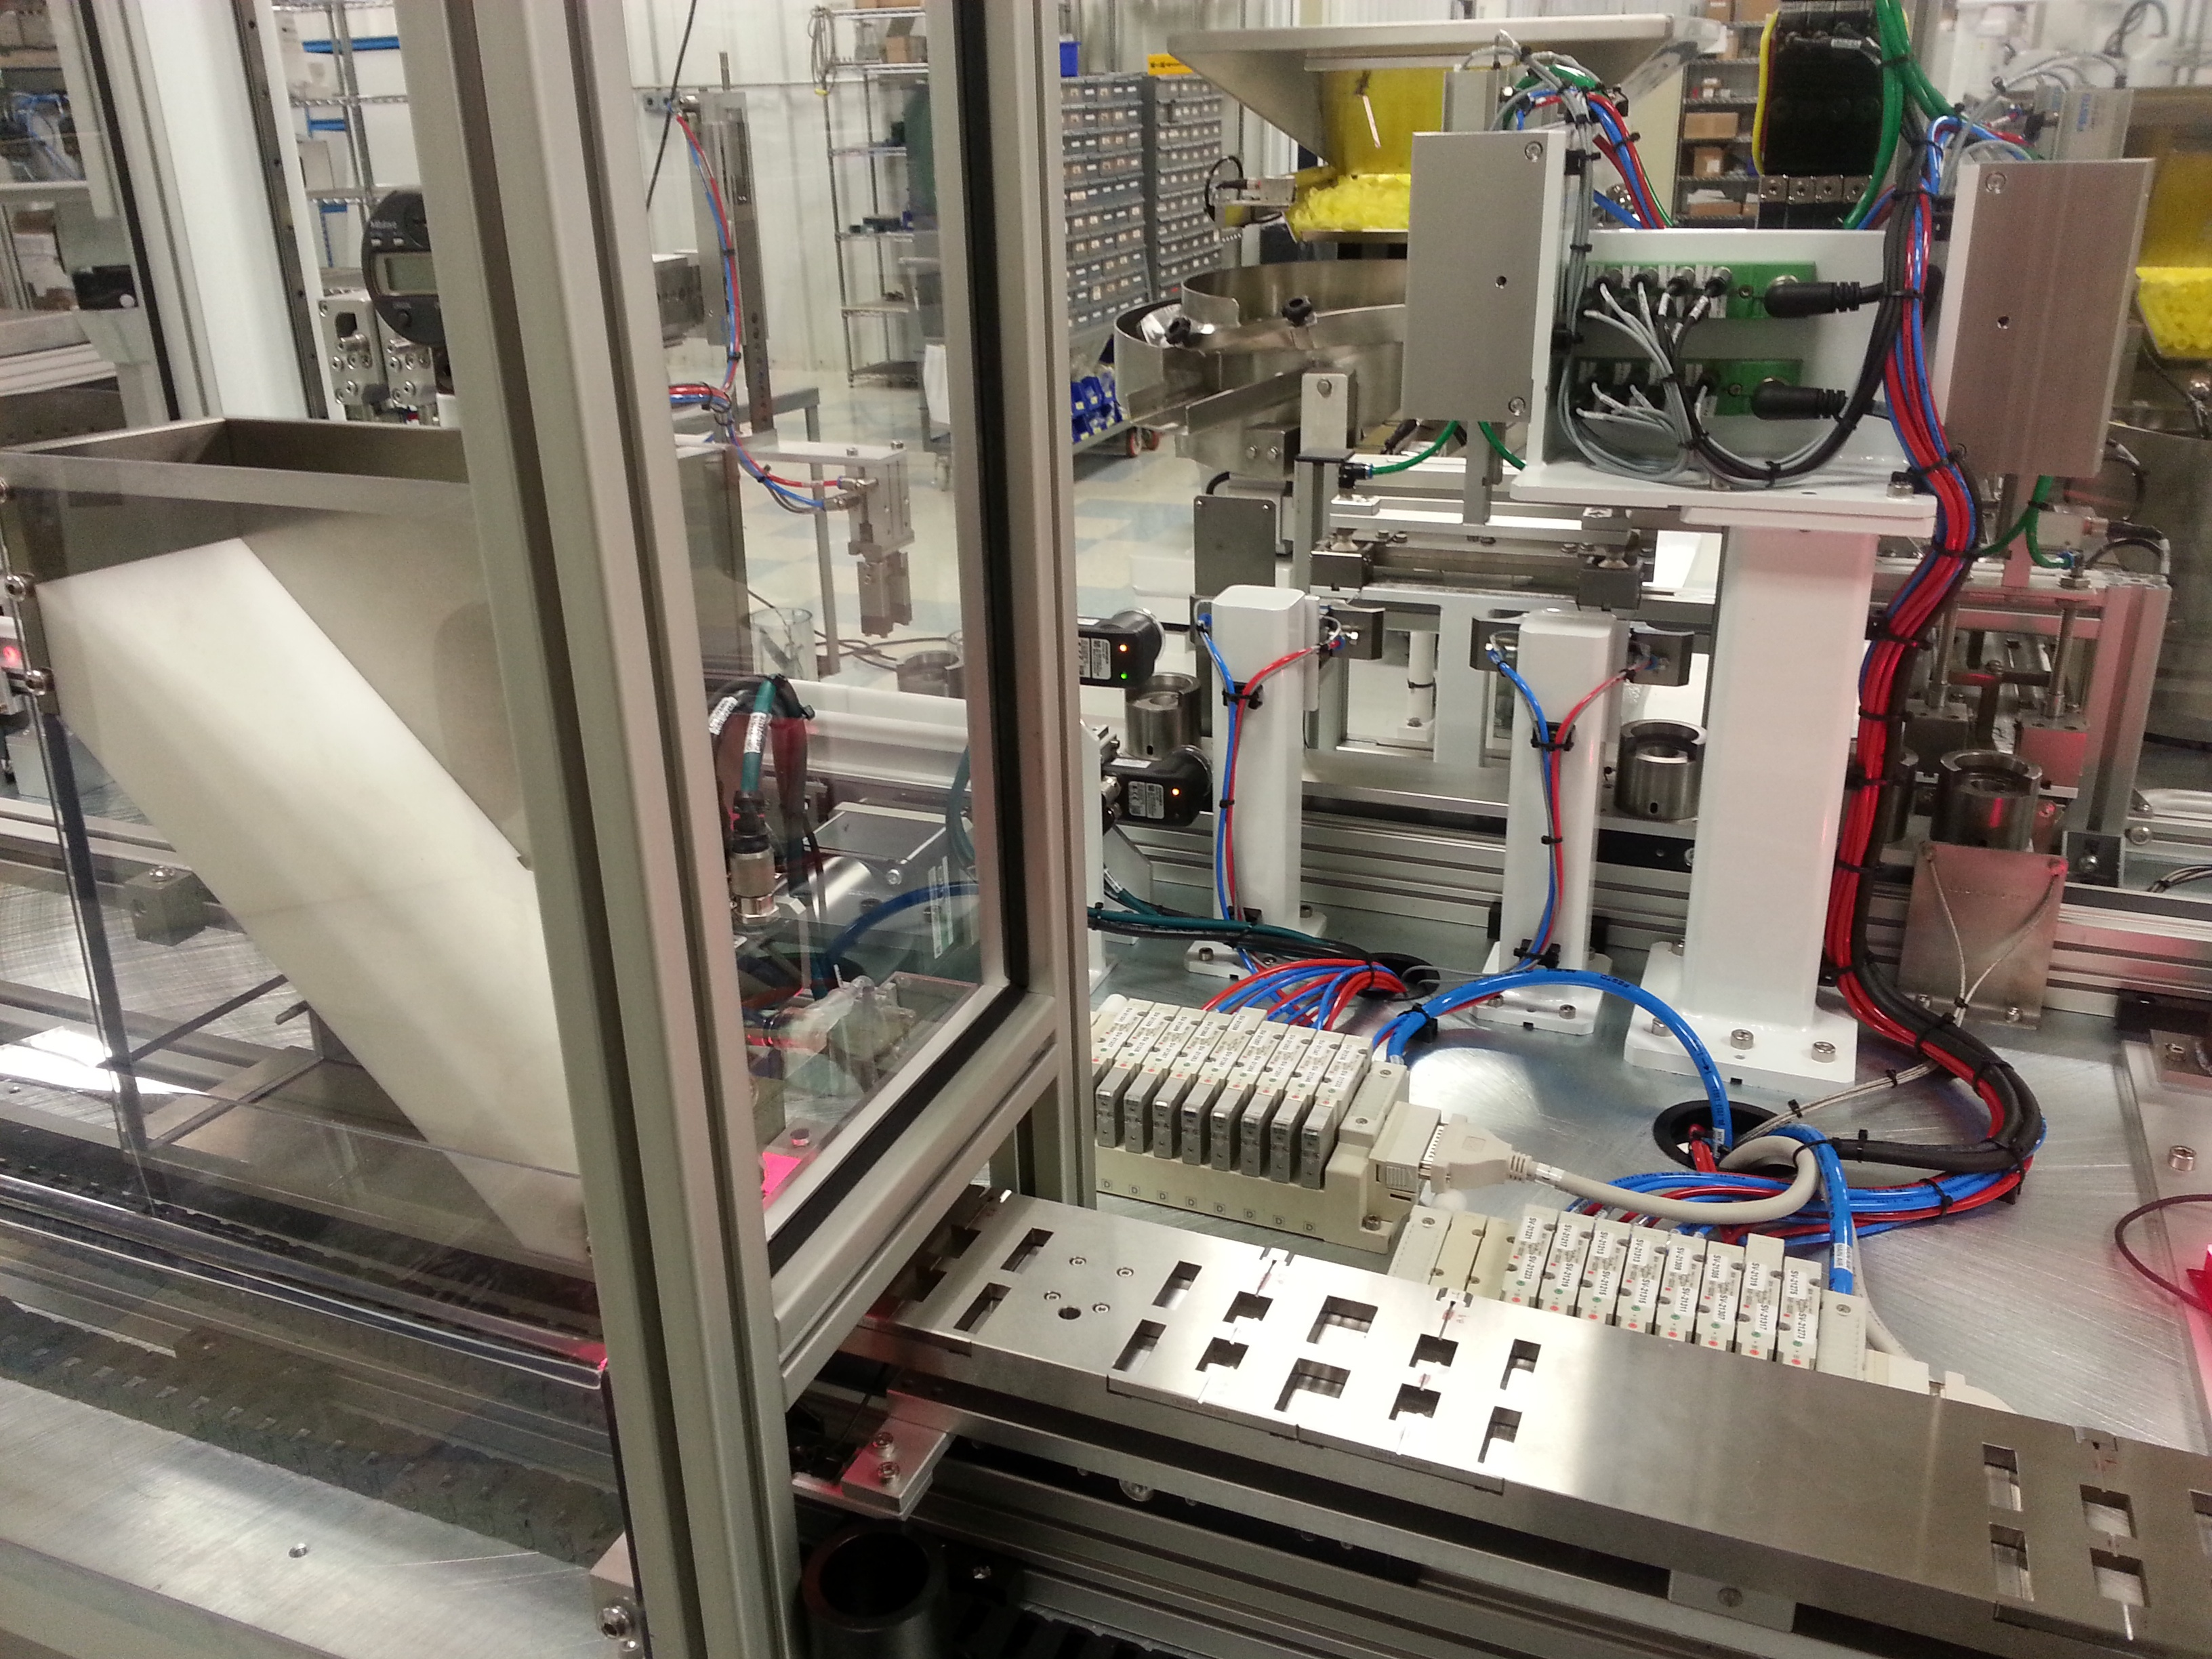 Four Considerations for Selecting Medical Device Components